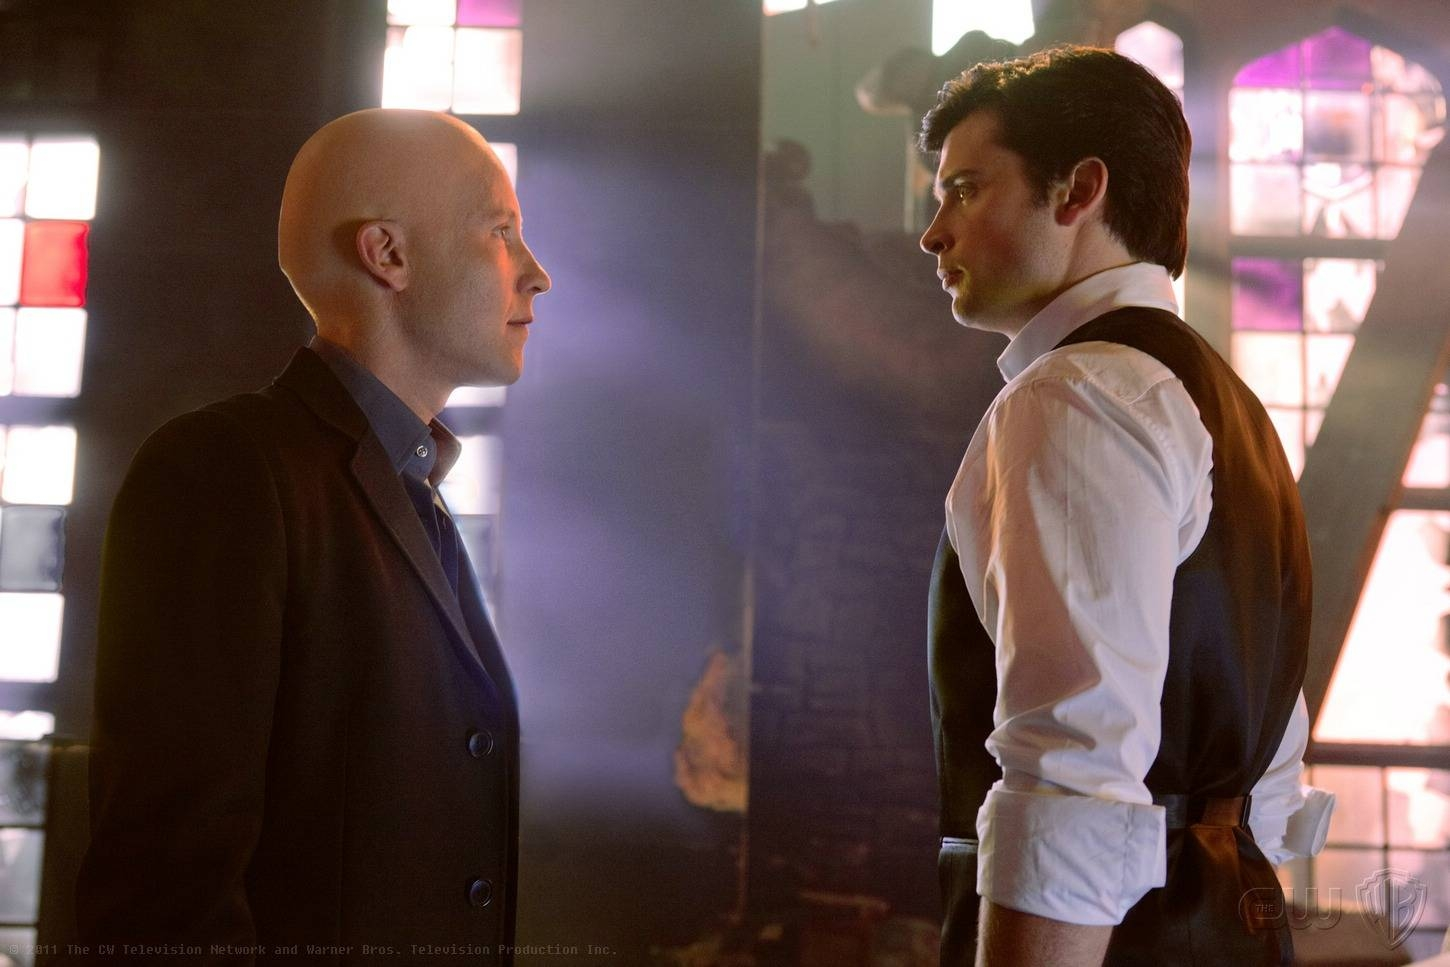 Michael Rosenbaum as Lex and Tom Welling, as Clark, reunited in the series finale